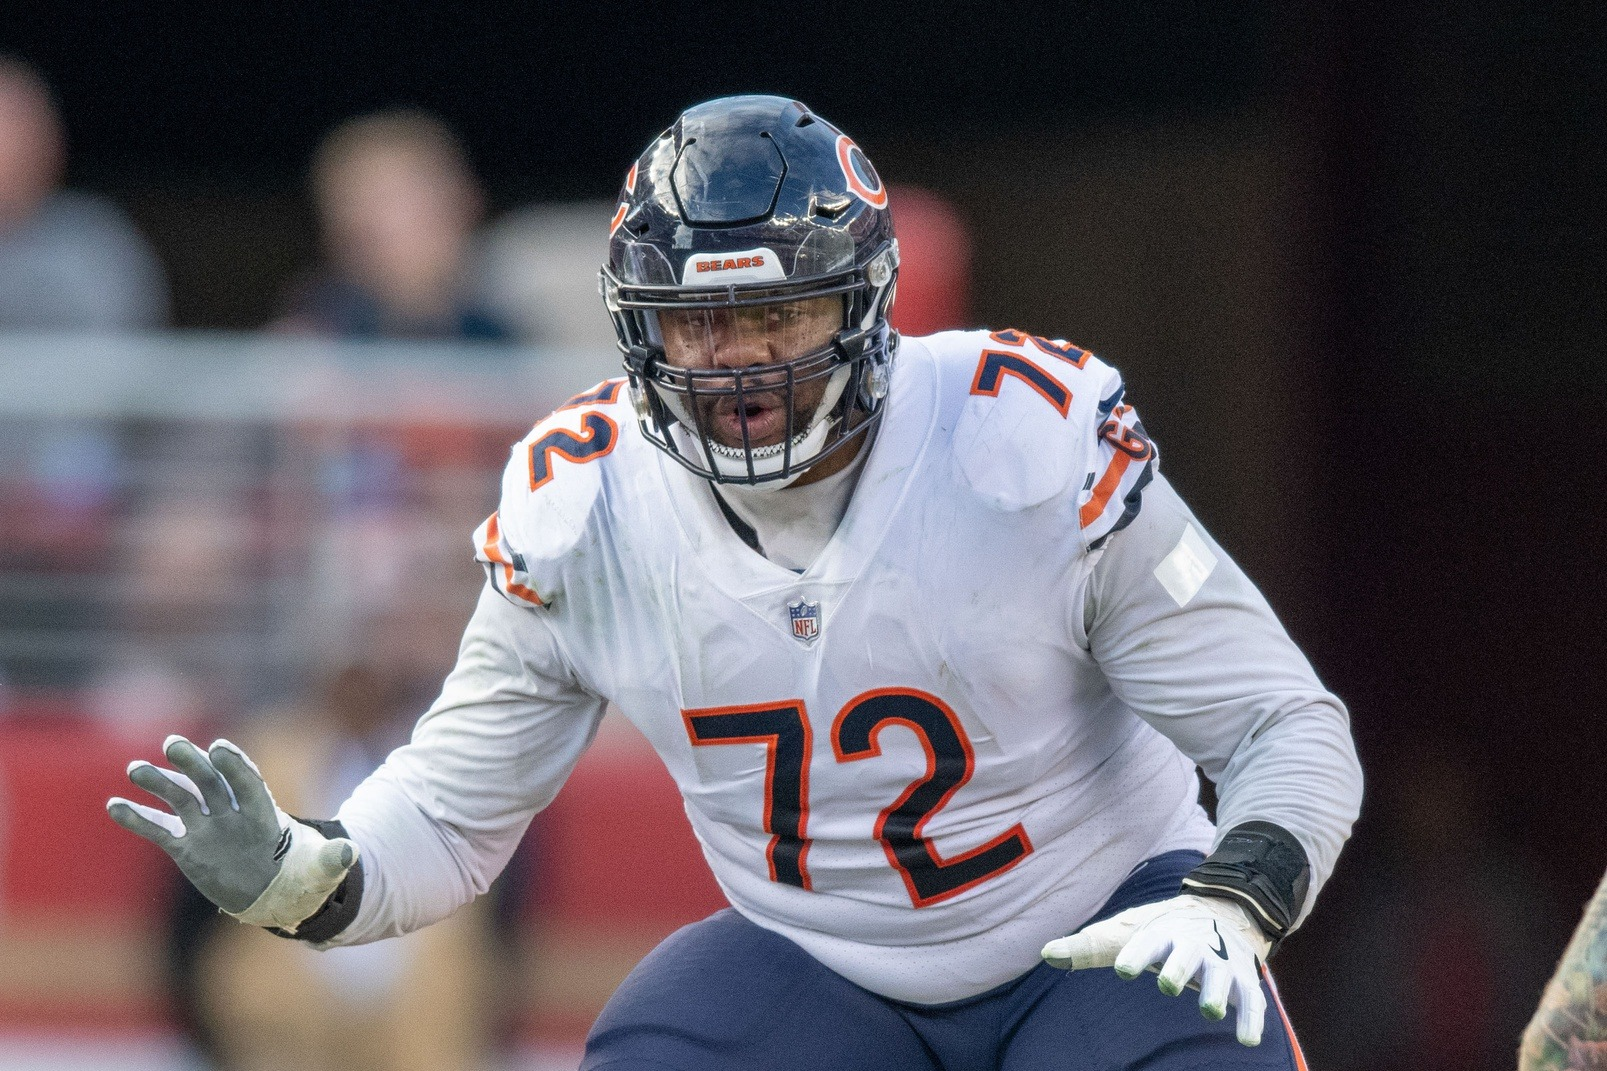 Here are the options for the Broncos at right tackle with Ja'Wuan James out for the year